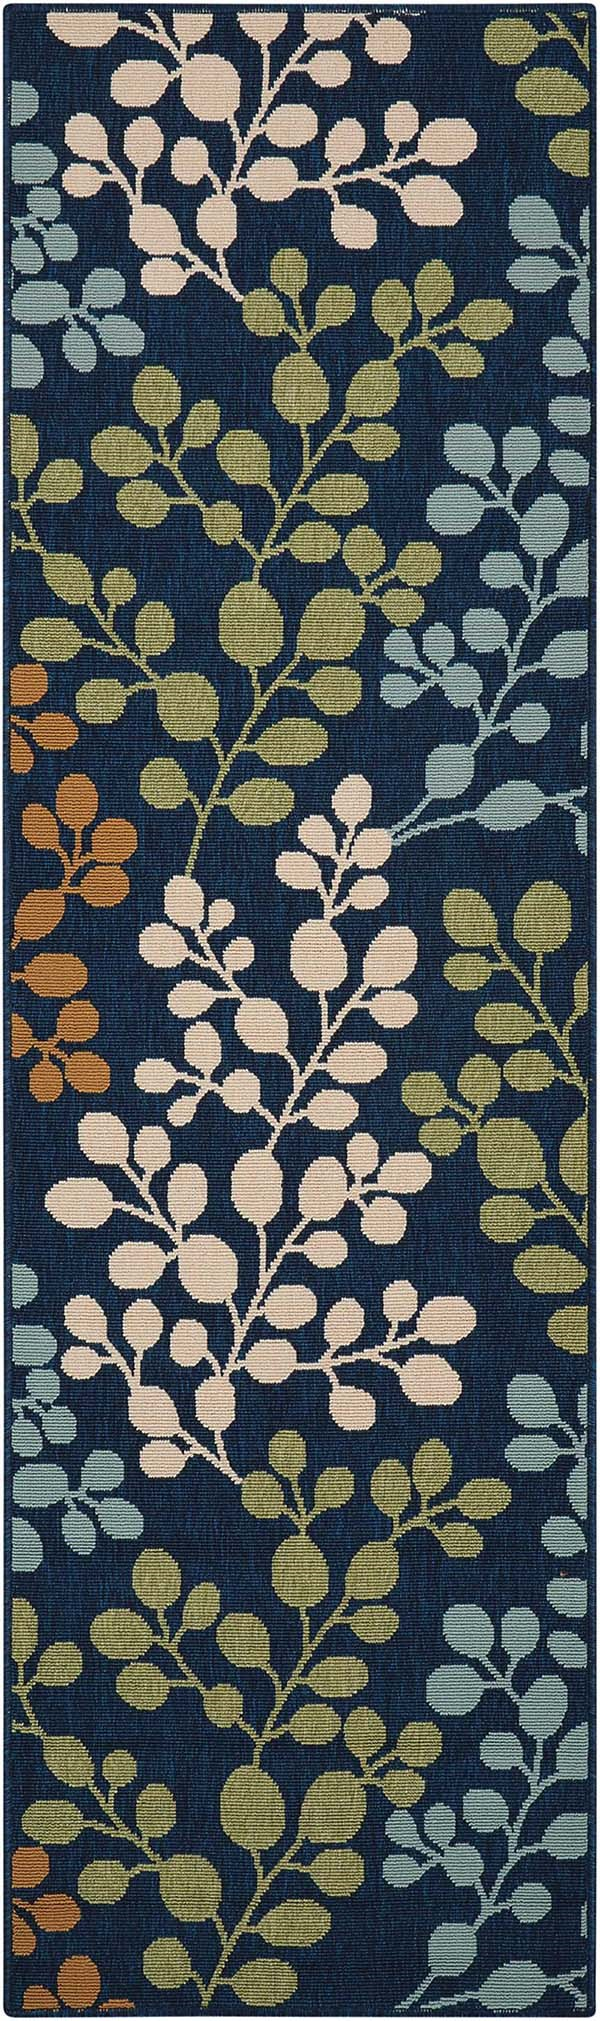 Navy Outdoor / Indoor Area Rug